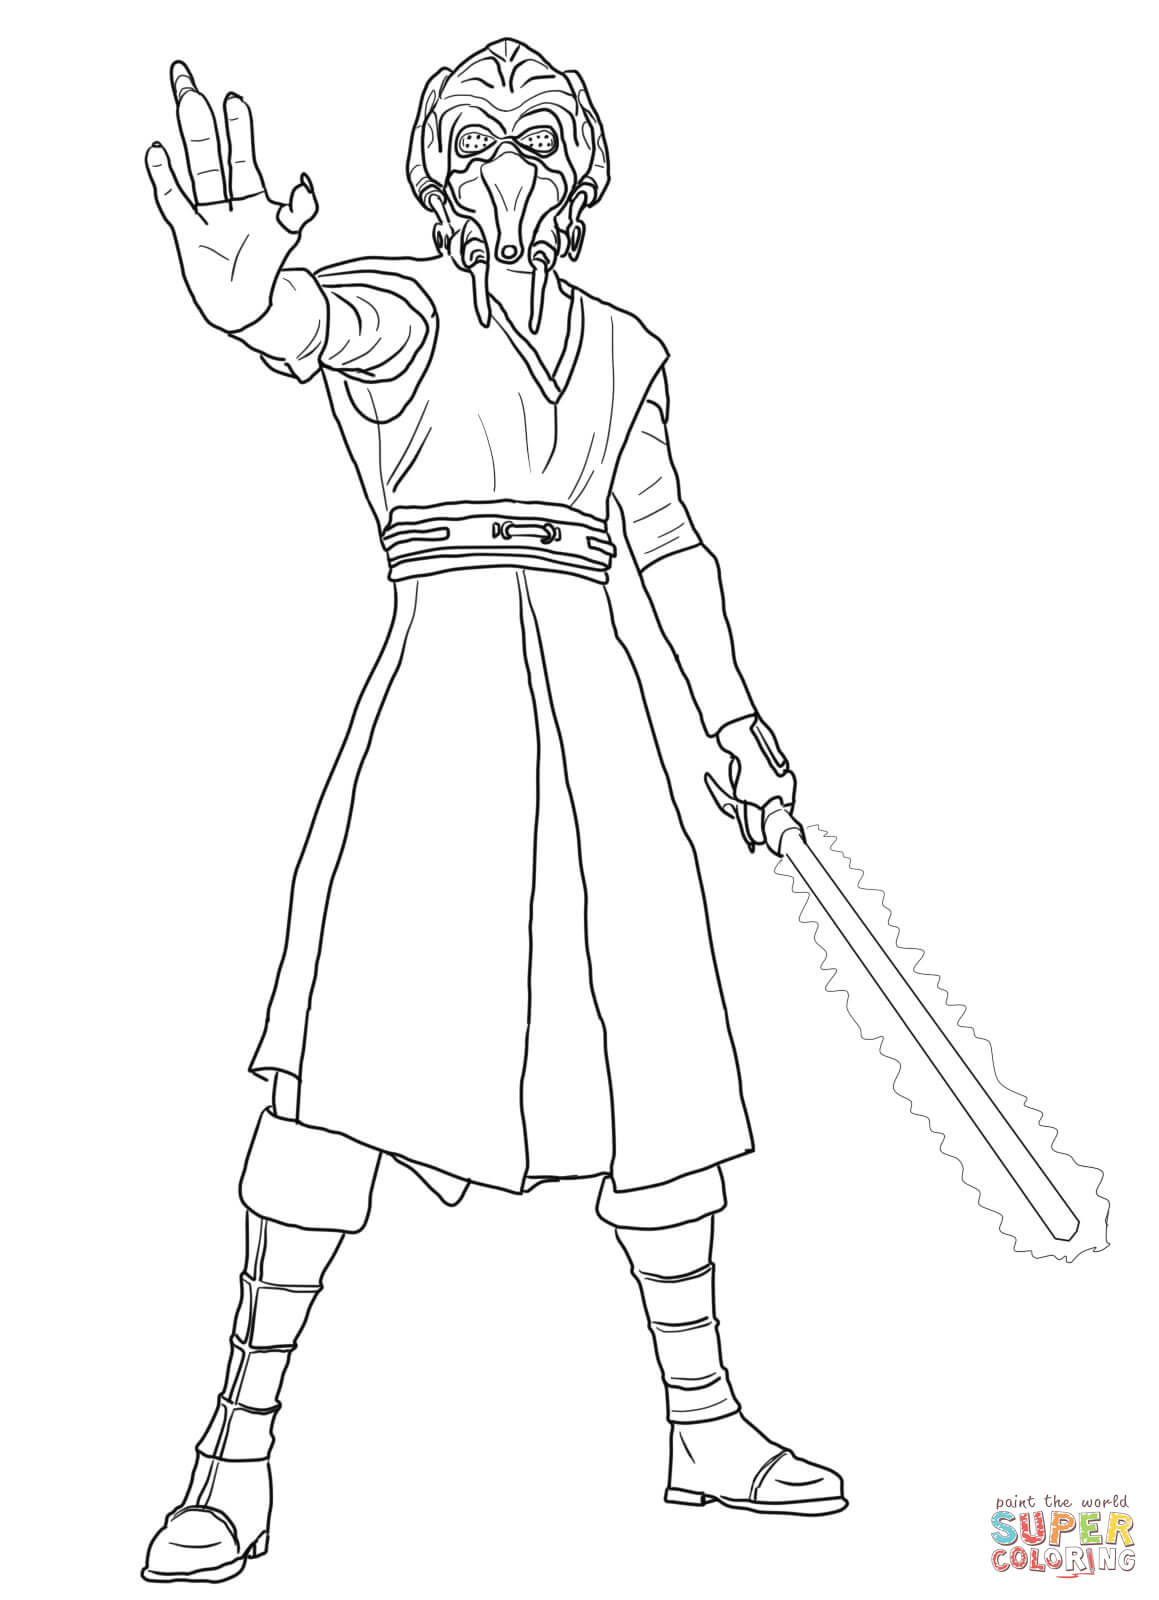 Lightsaber Coloring Page At GetDrawings